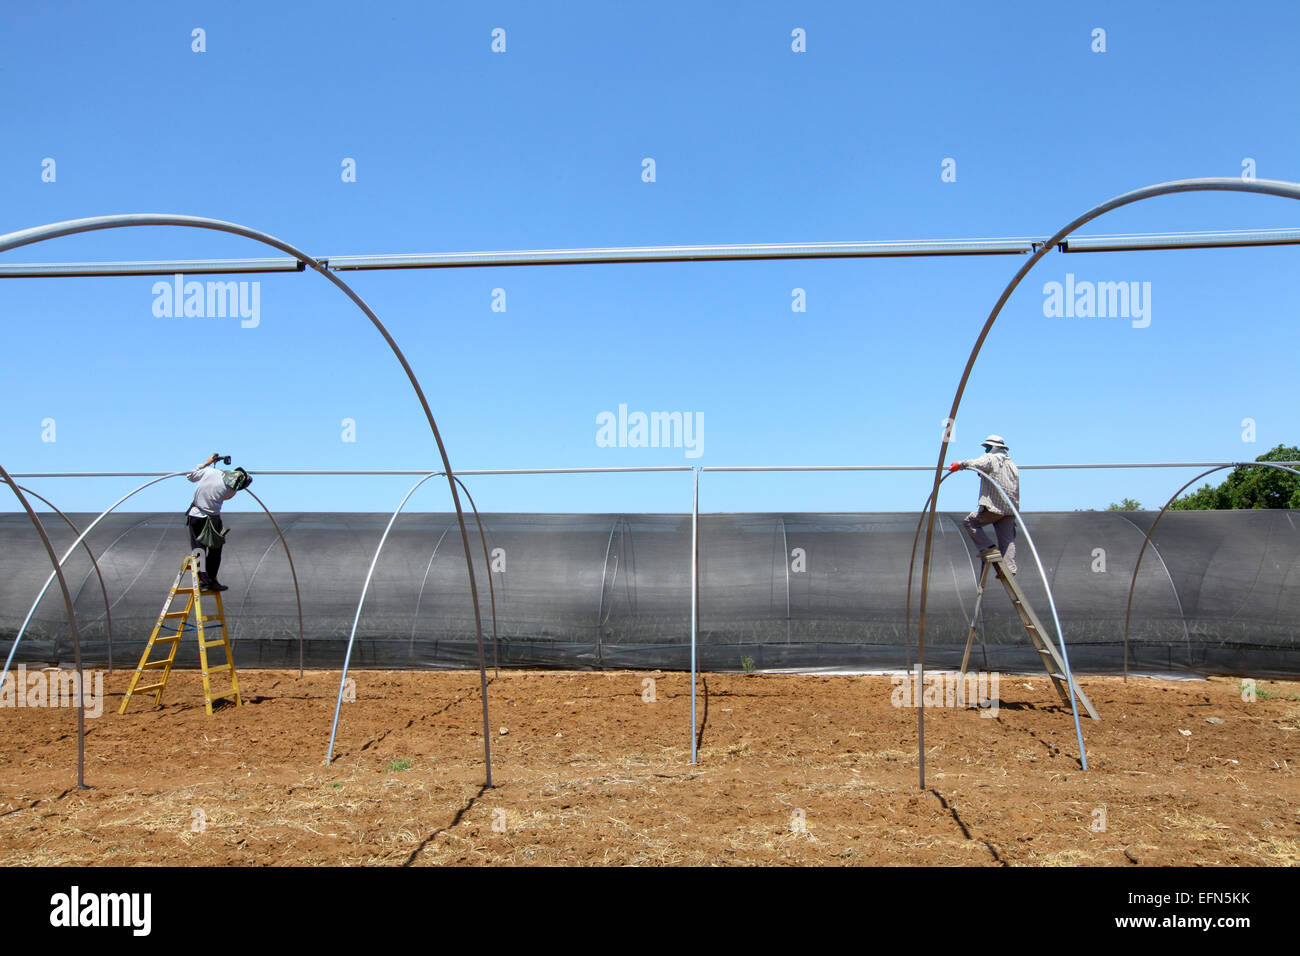 Migrant workers build a greenhouse in Israel, Emek Hefer - Stock Image